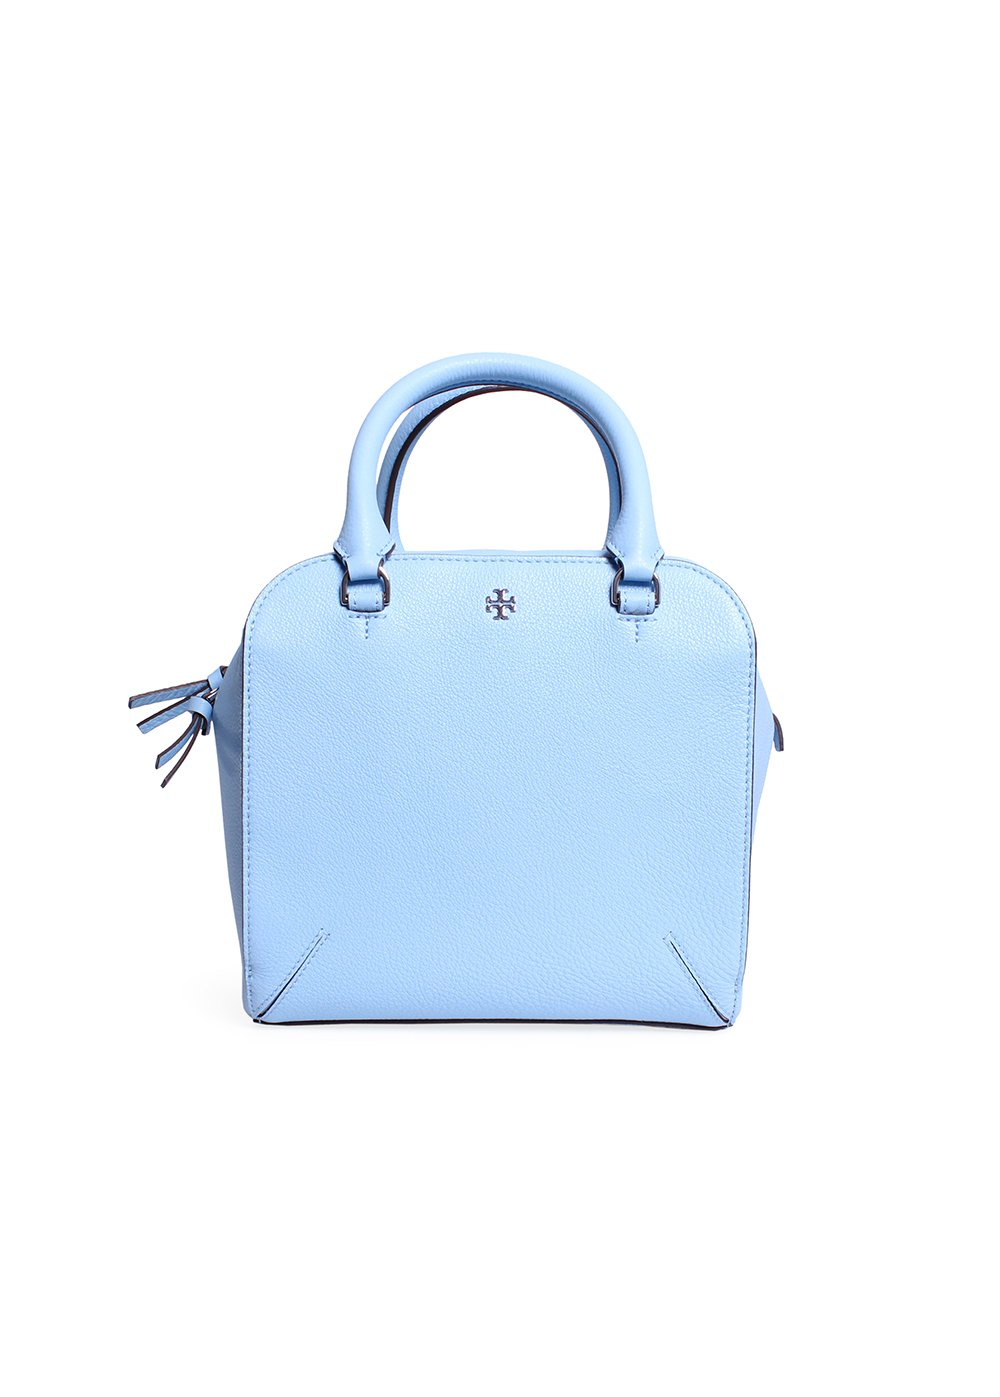 89820850f5e Buy Tory Burch Robinson Pebbled Mini Satchel in Riviera Blue Online at Low  Prices in India - Amazon.in